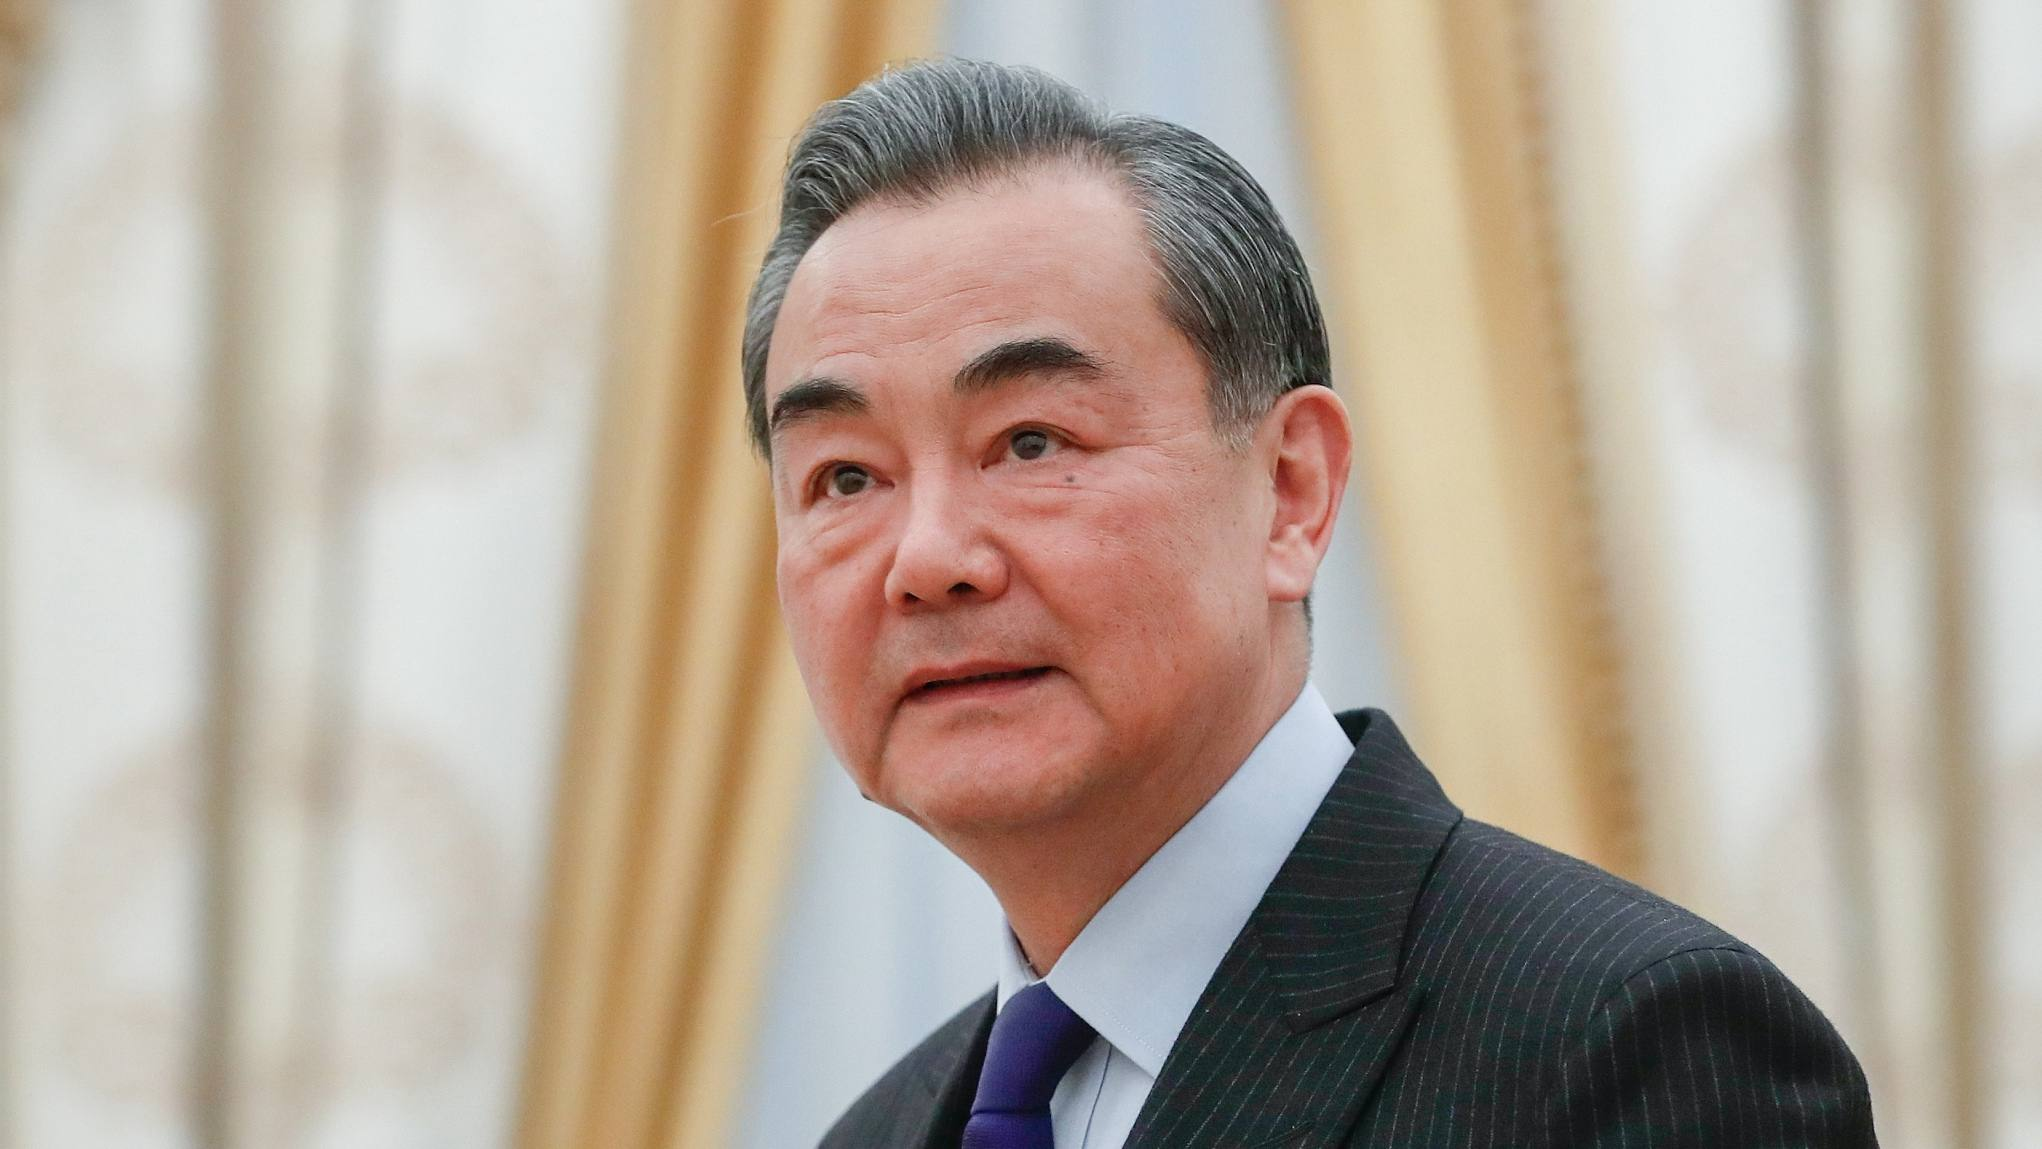 Wang Yi: China vows to enhance cooperation with South Africa, India